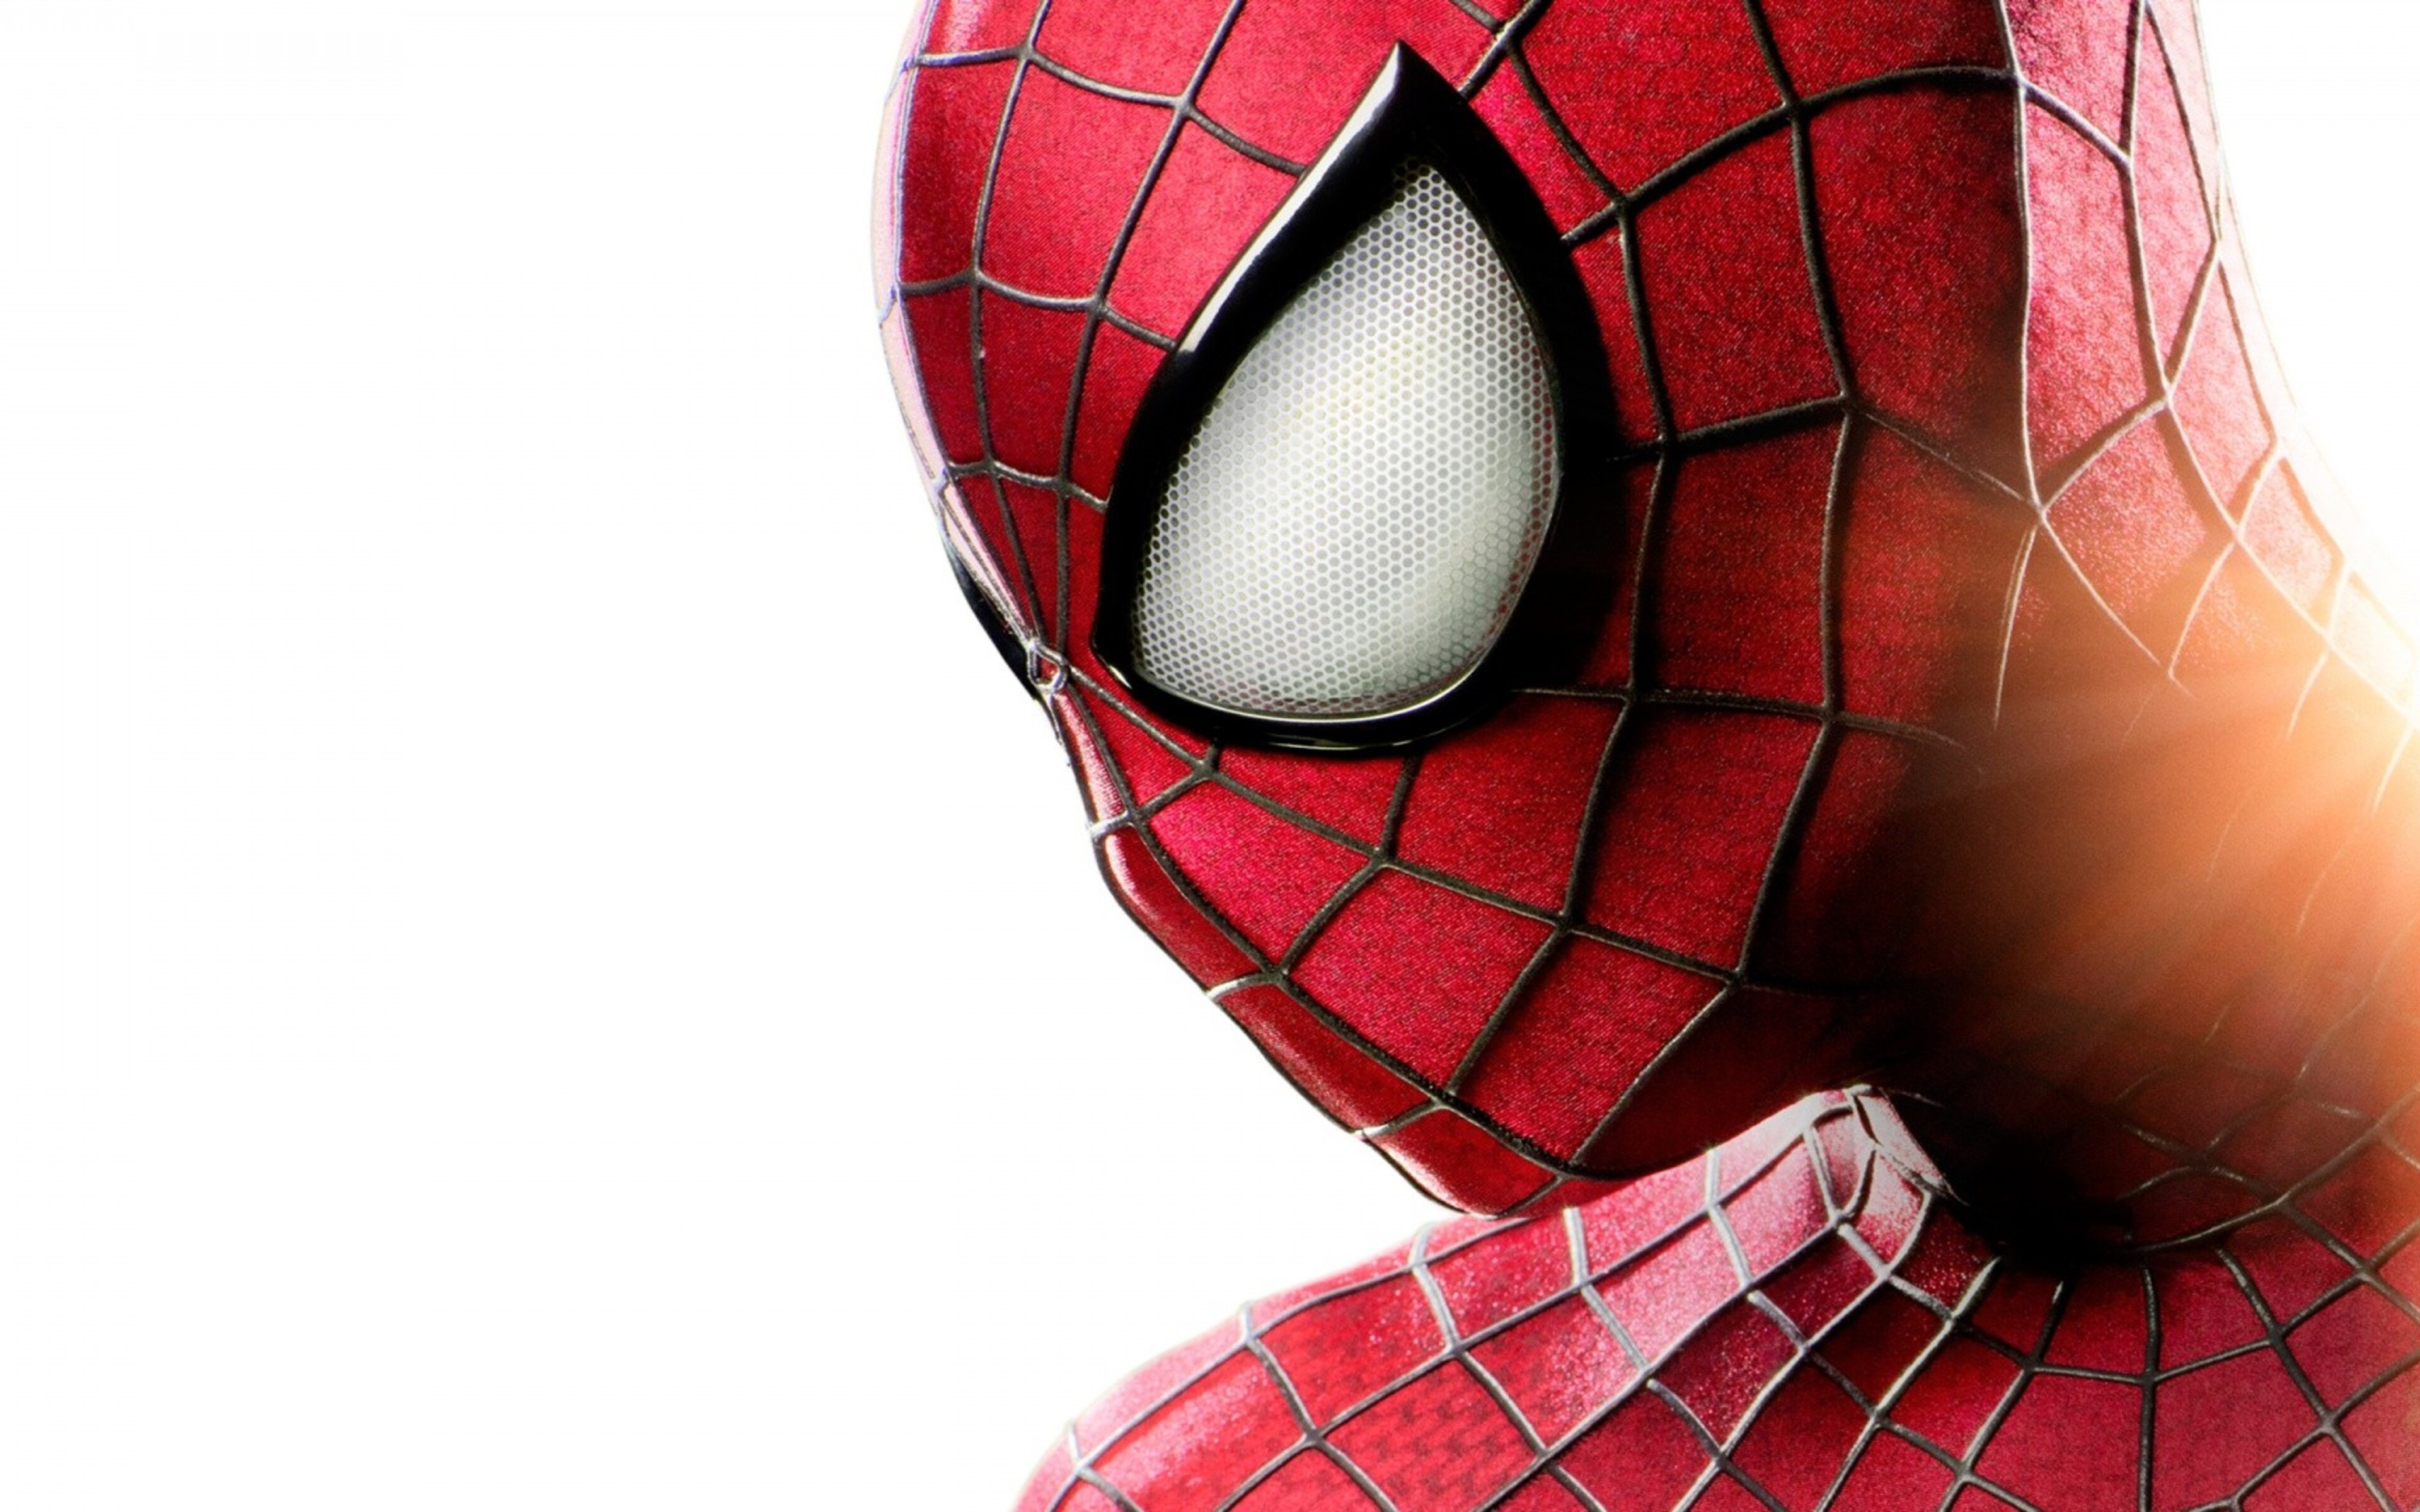 3840x2400 Spiderman Face 4k HD 4k Wallpapers, Images ...